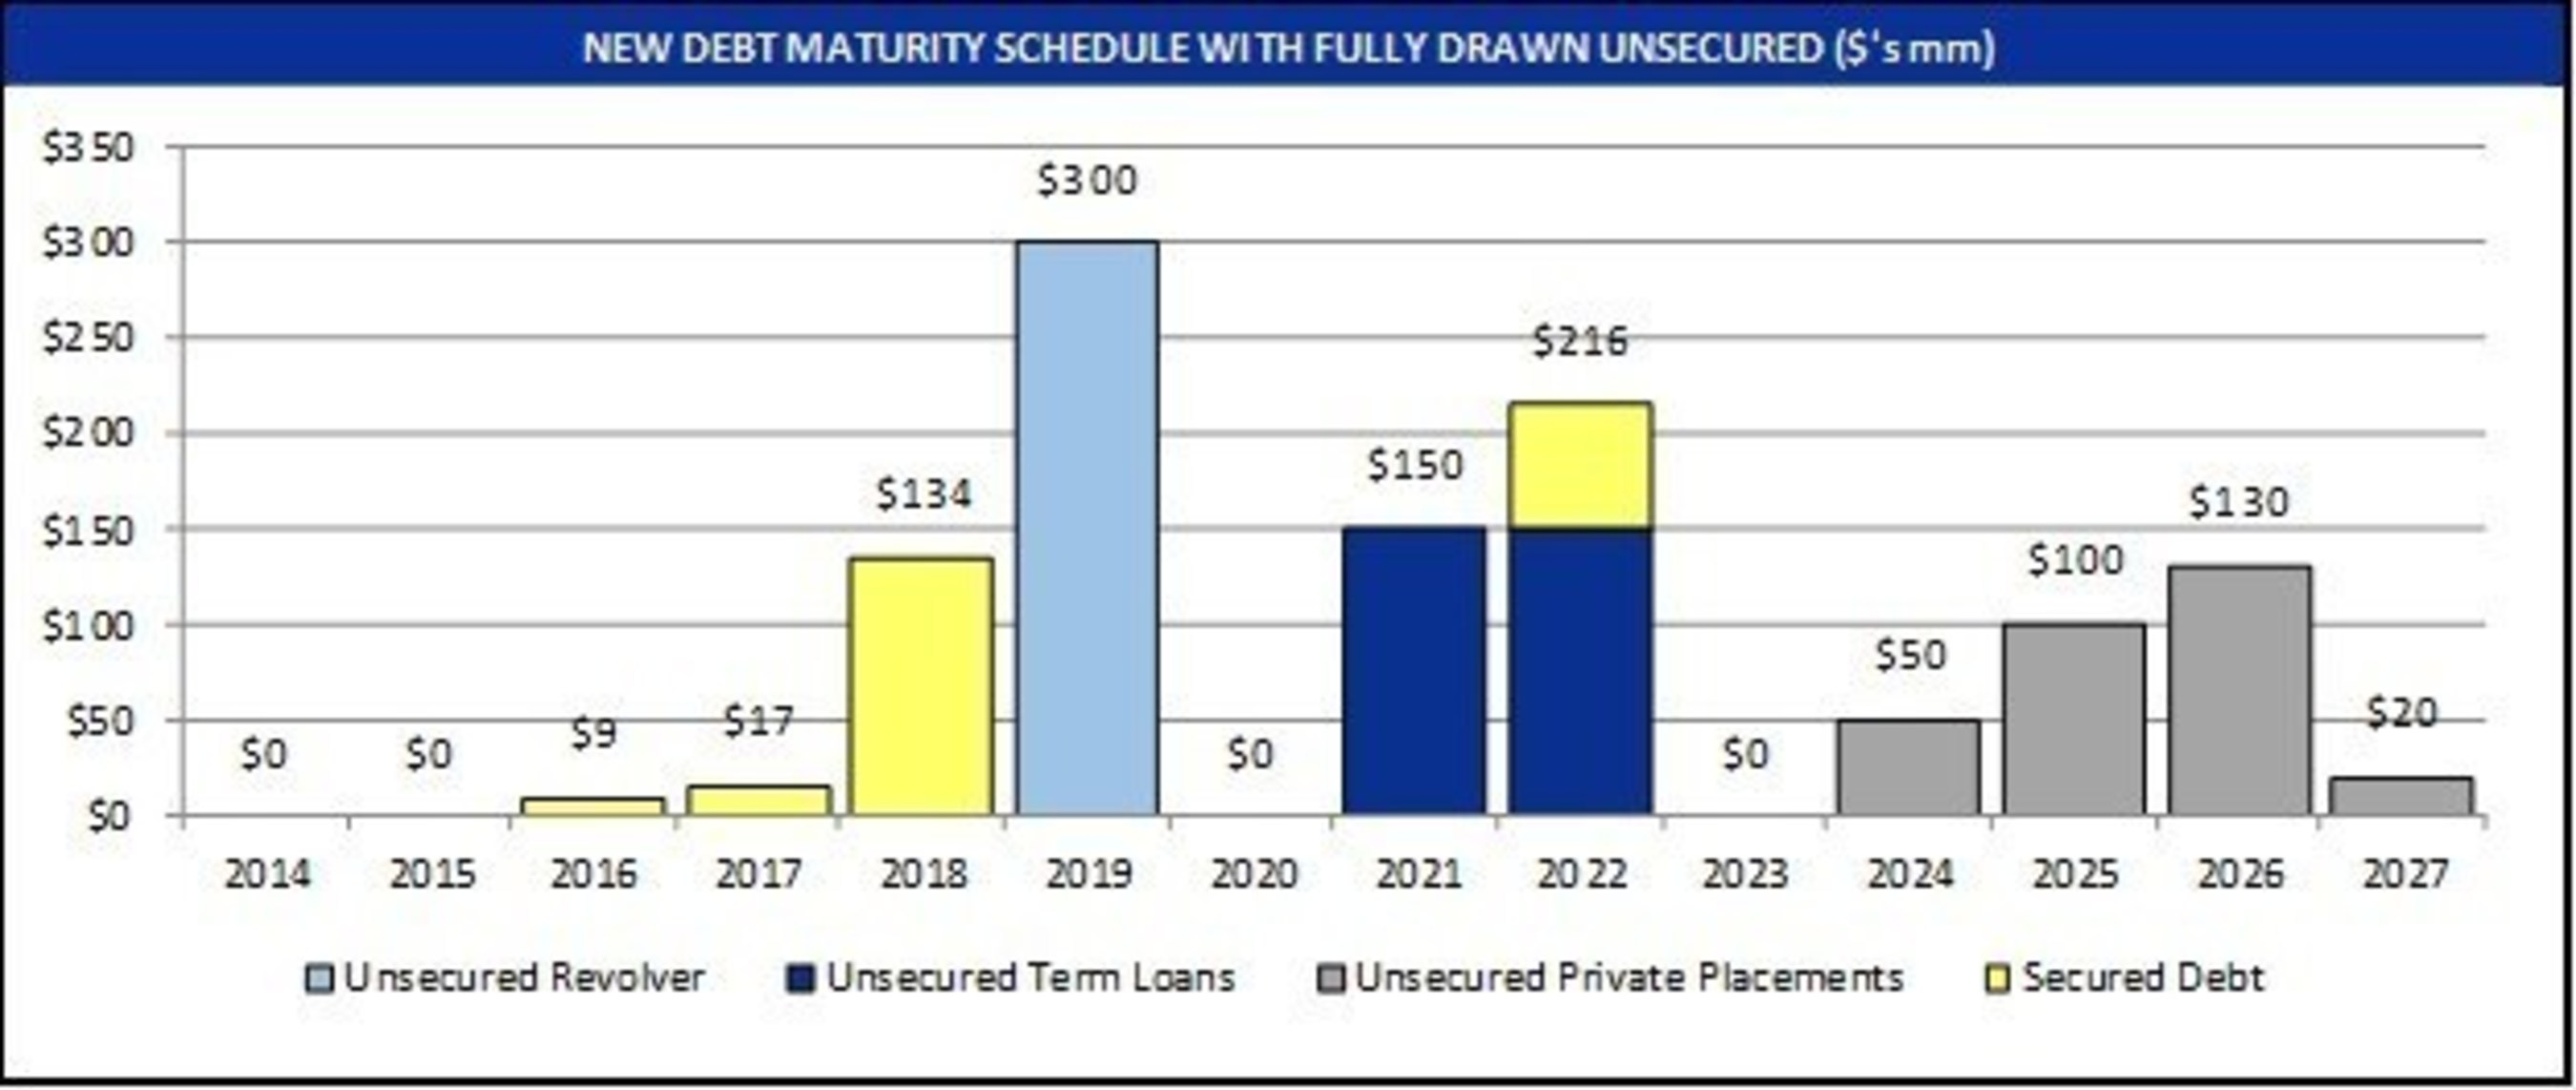 NEW DEBT MATURITY SCHEDULE WITH FULLY DRAWN UNSECURED